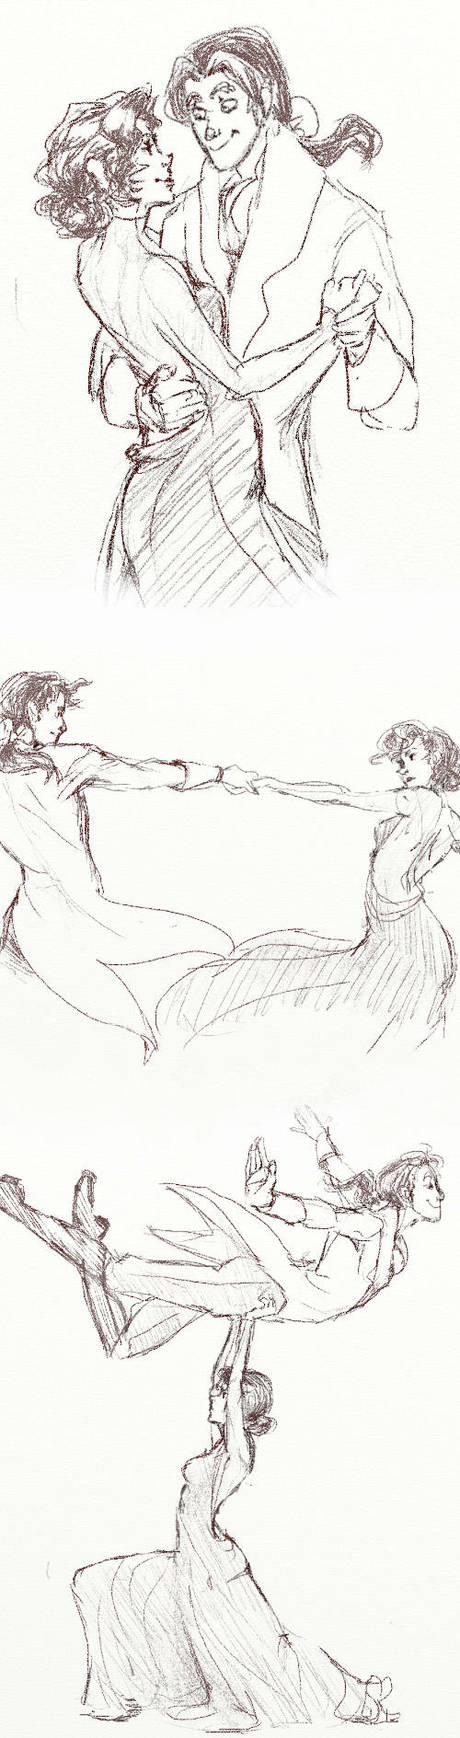 The Delancys Dance by nillia